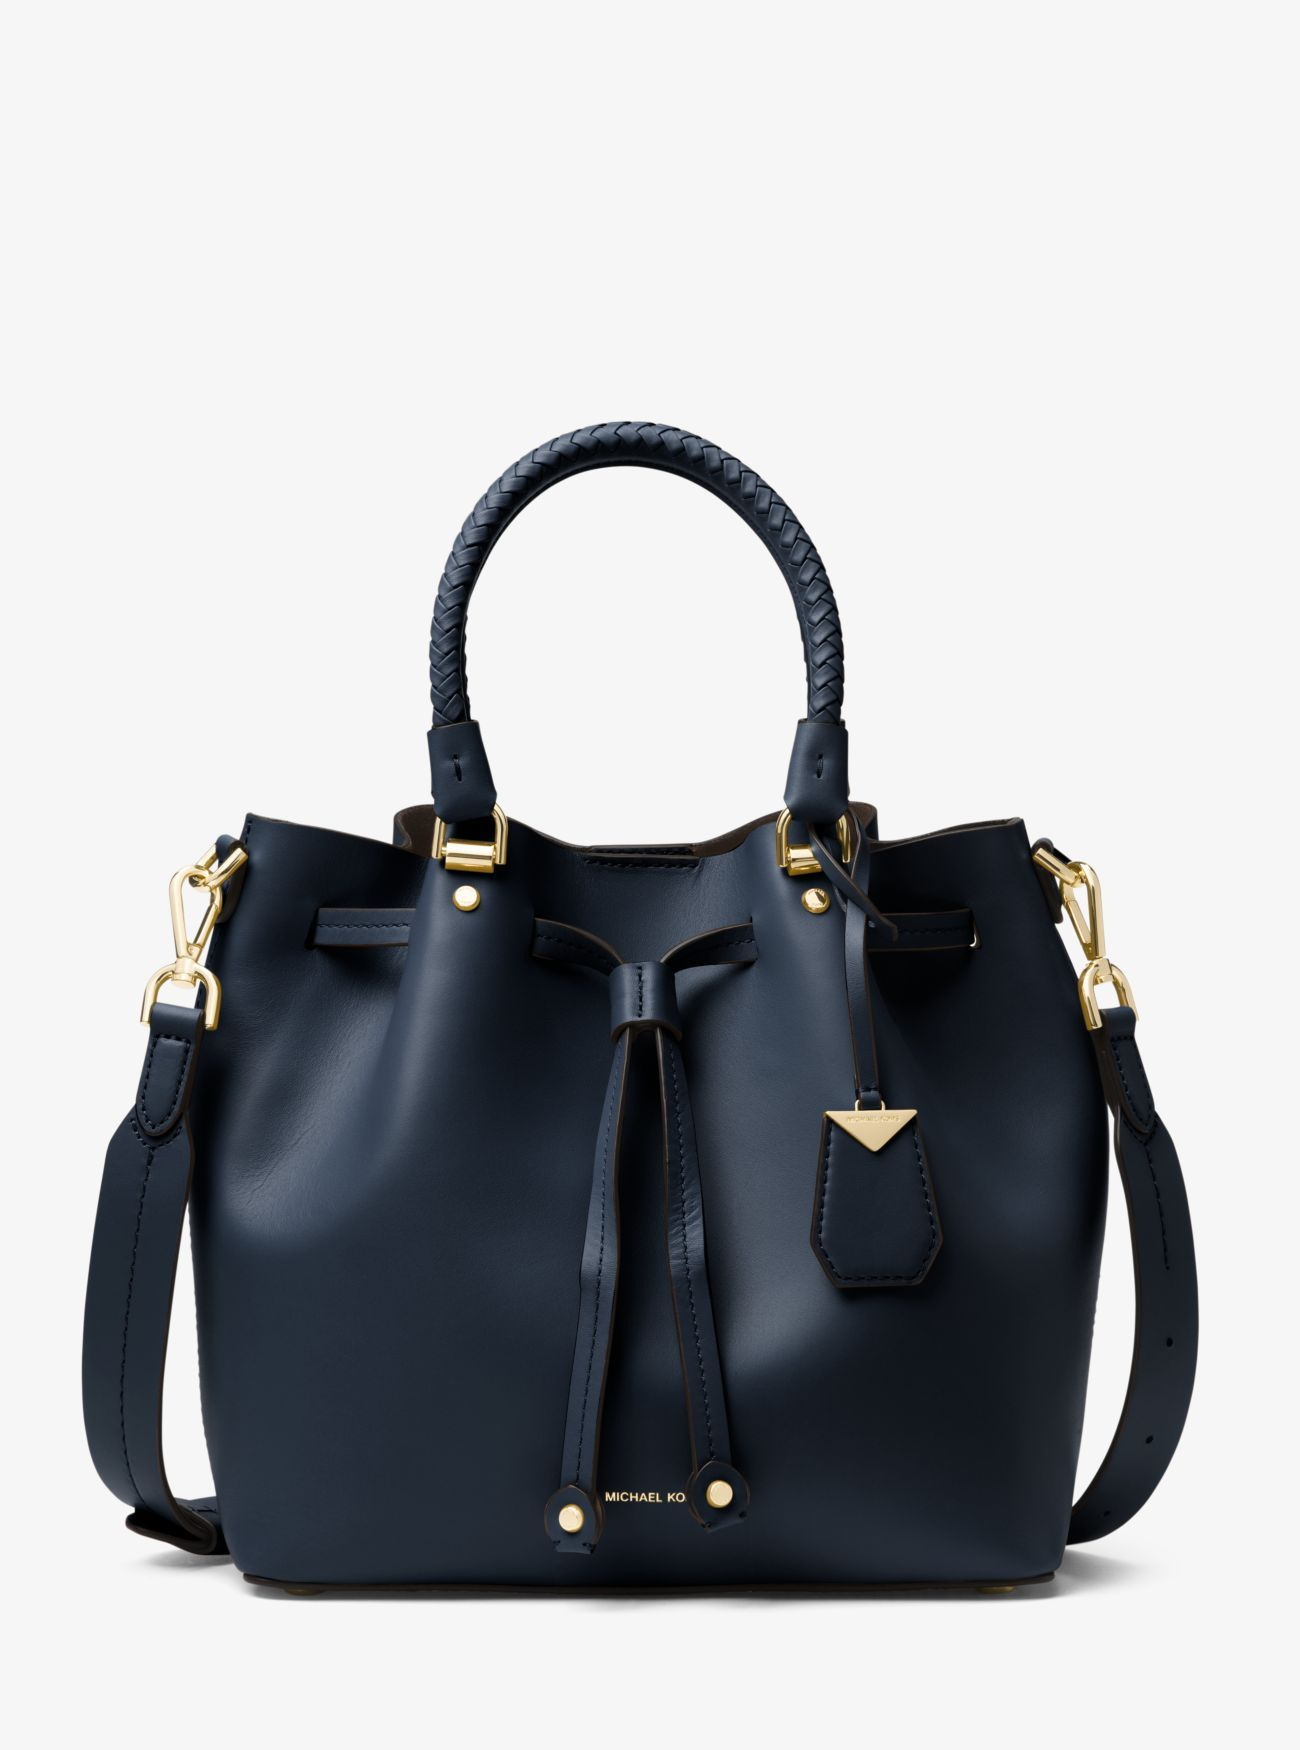 63d09be4efc4 ... purses   luggage on the official Michael Kors site. Blakely Leather  Bucket Bag